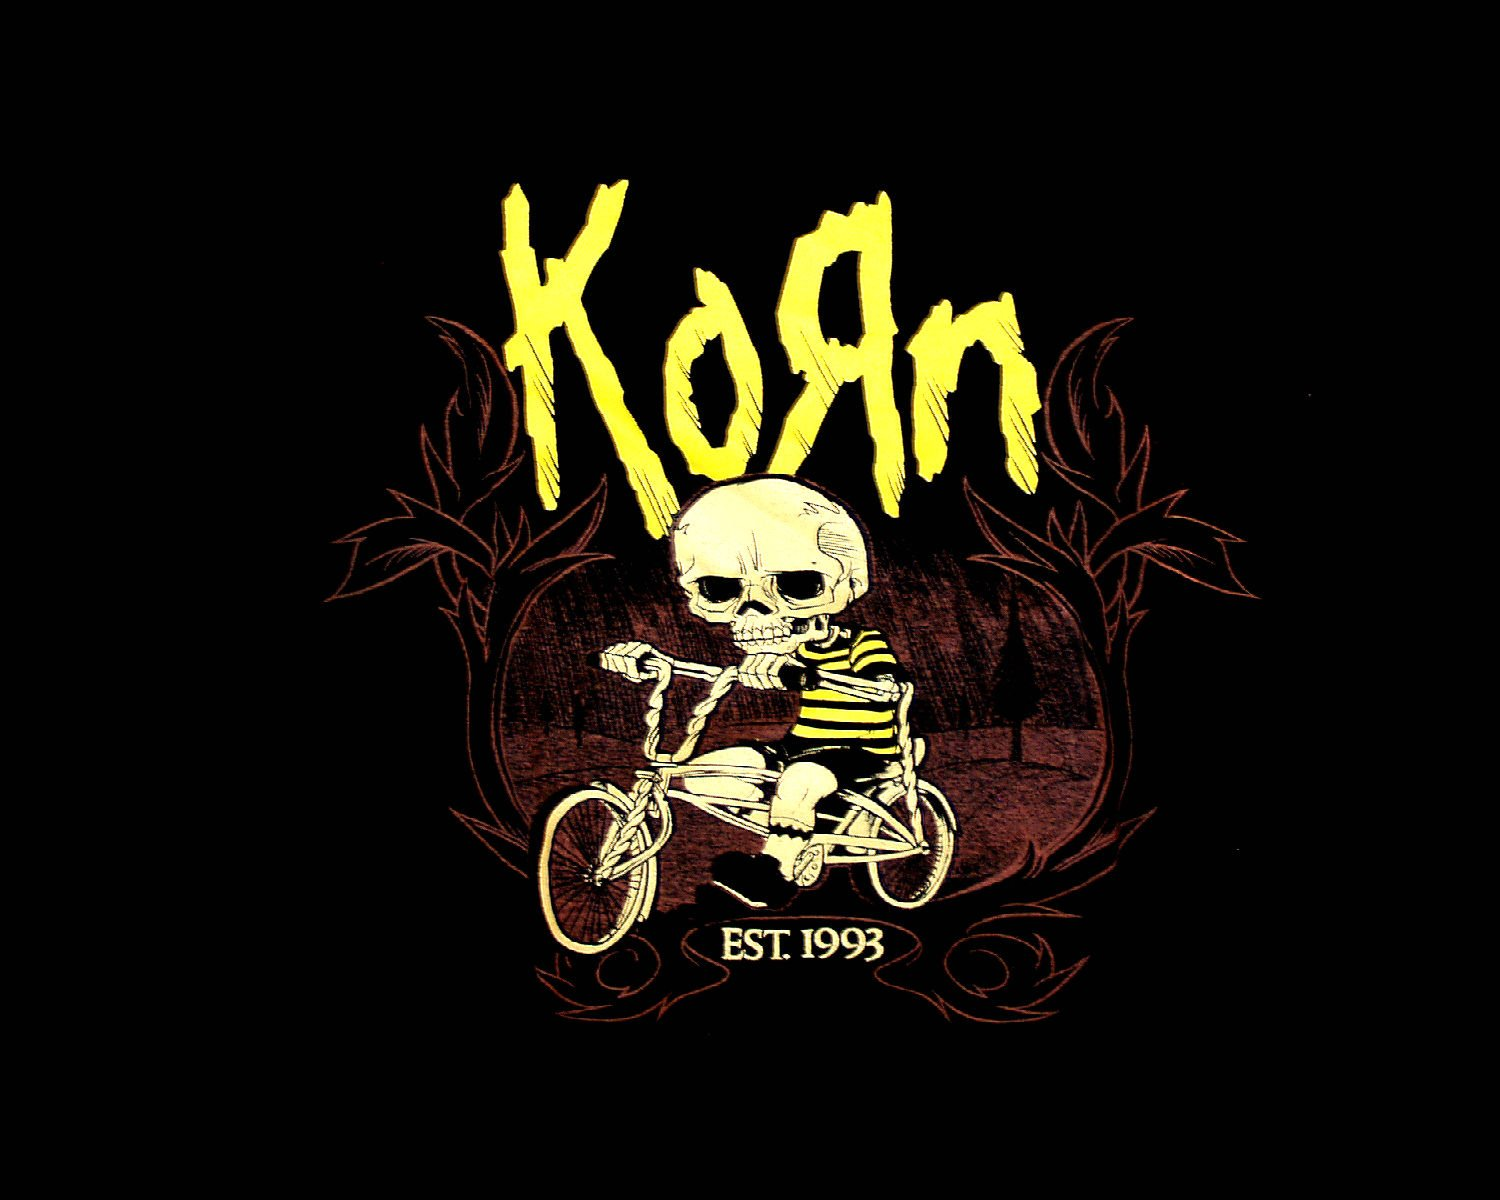 korn wallpapers | WallpaperUP